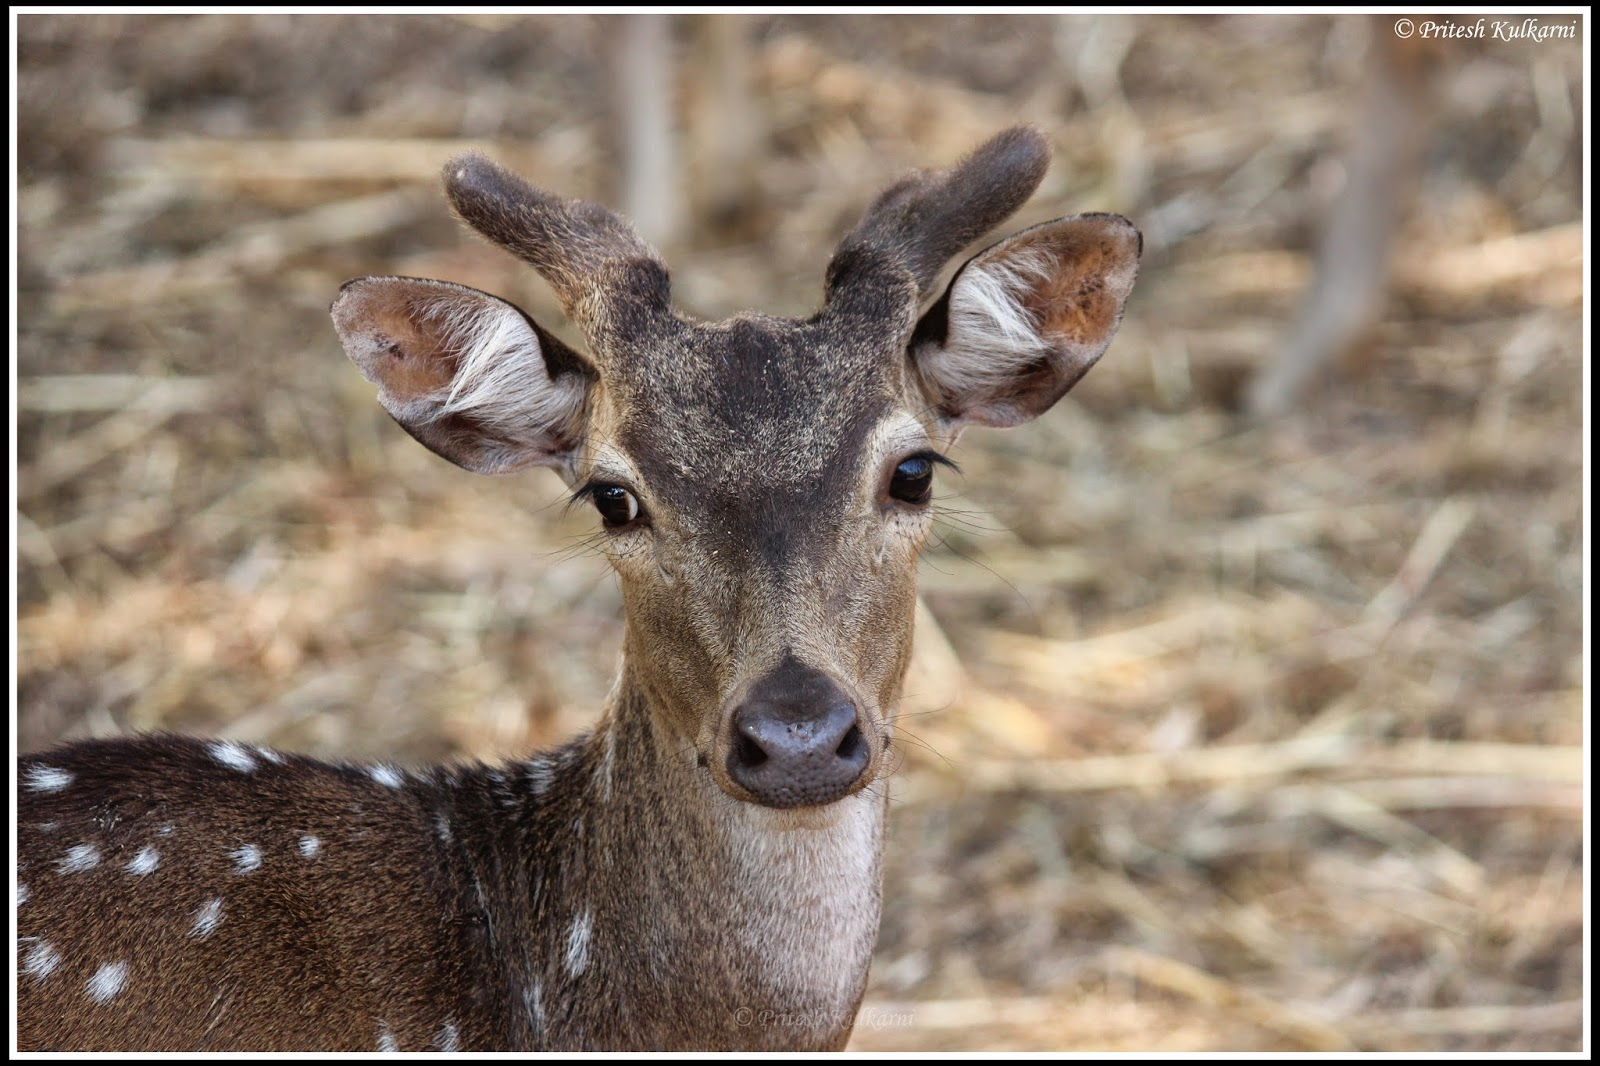 Spotted deer at Bhadra